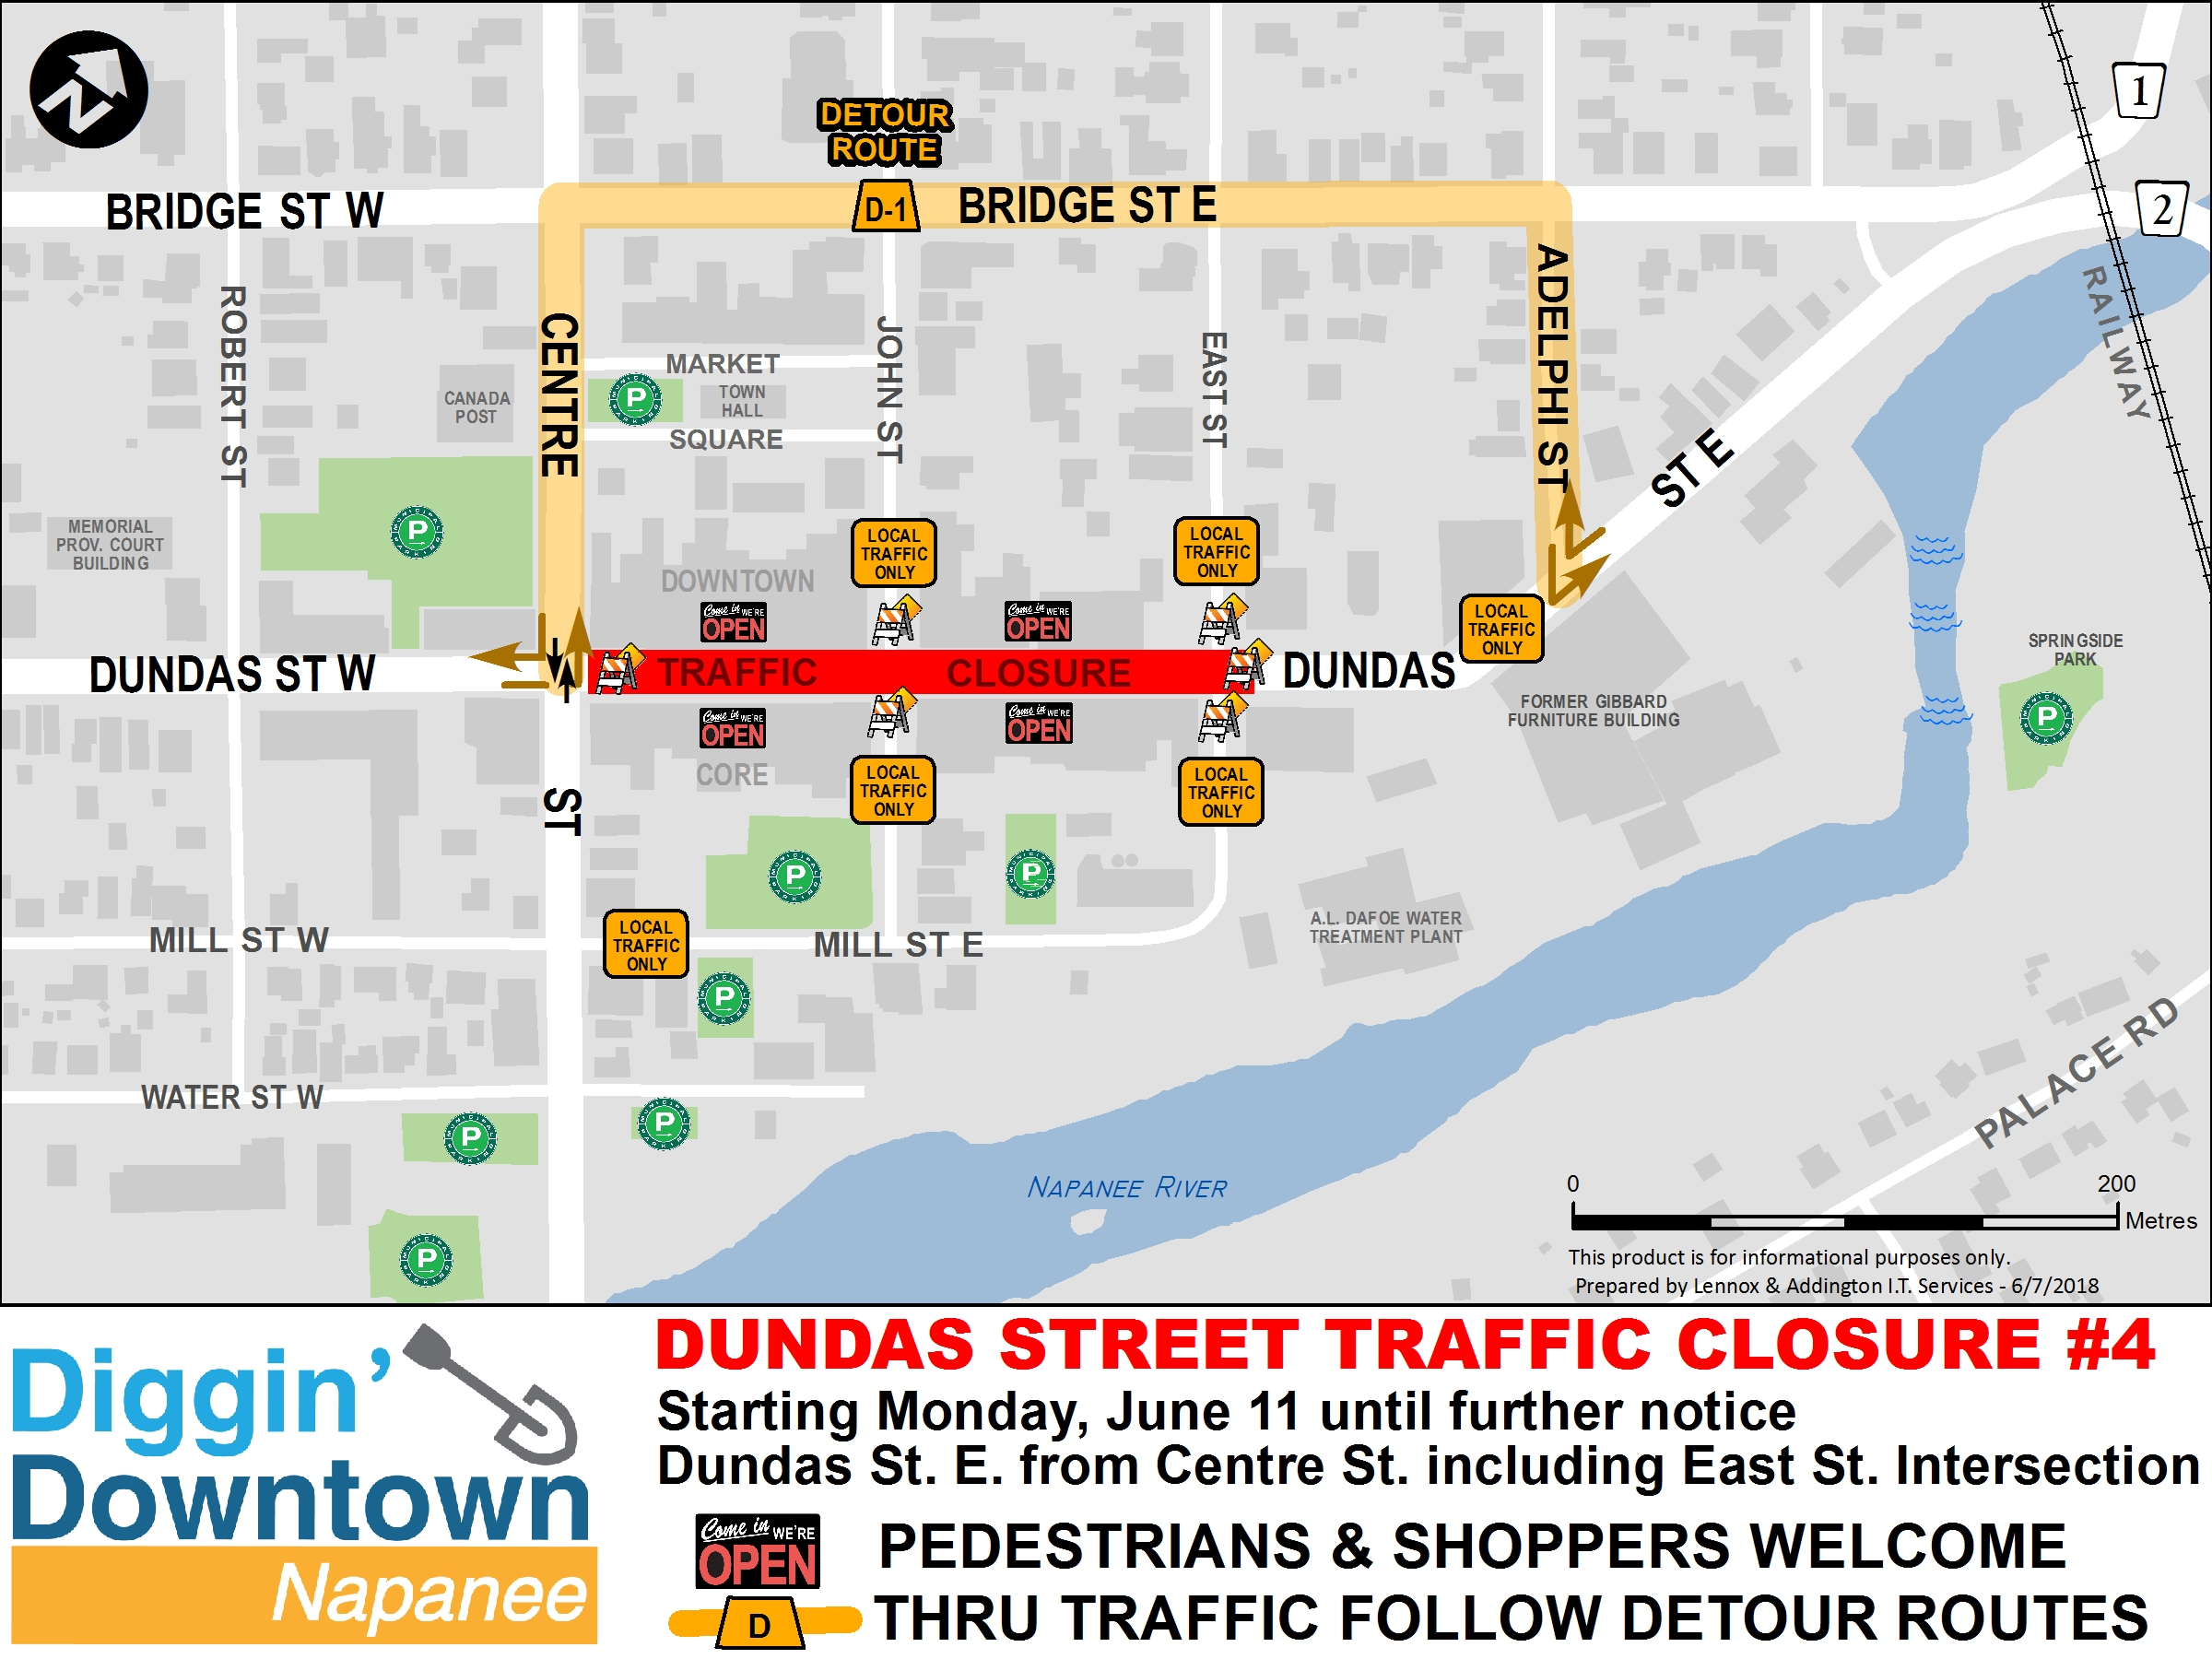 Diggin Downtown - Dundas Reconstruction Phase 2 Closure 4.jpg